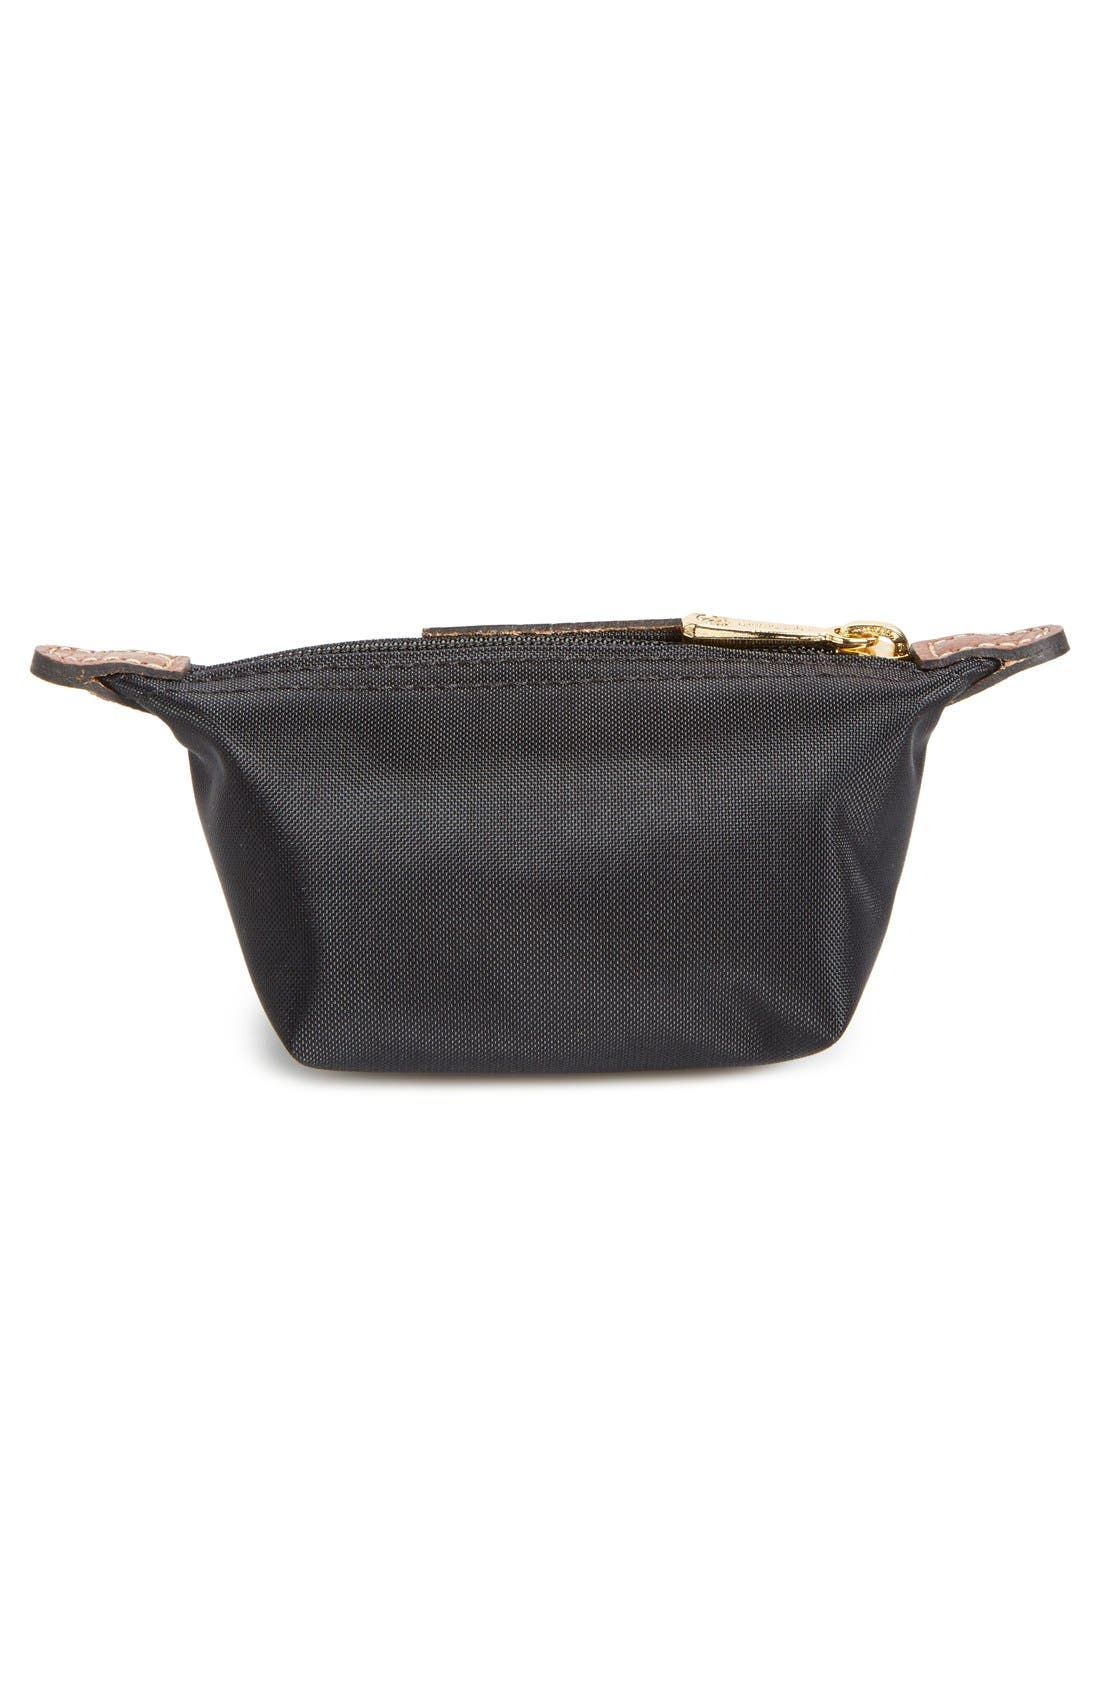 Alternate Image 3  - Longchamp 'Le Pliage' Coin Purse